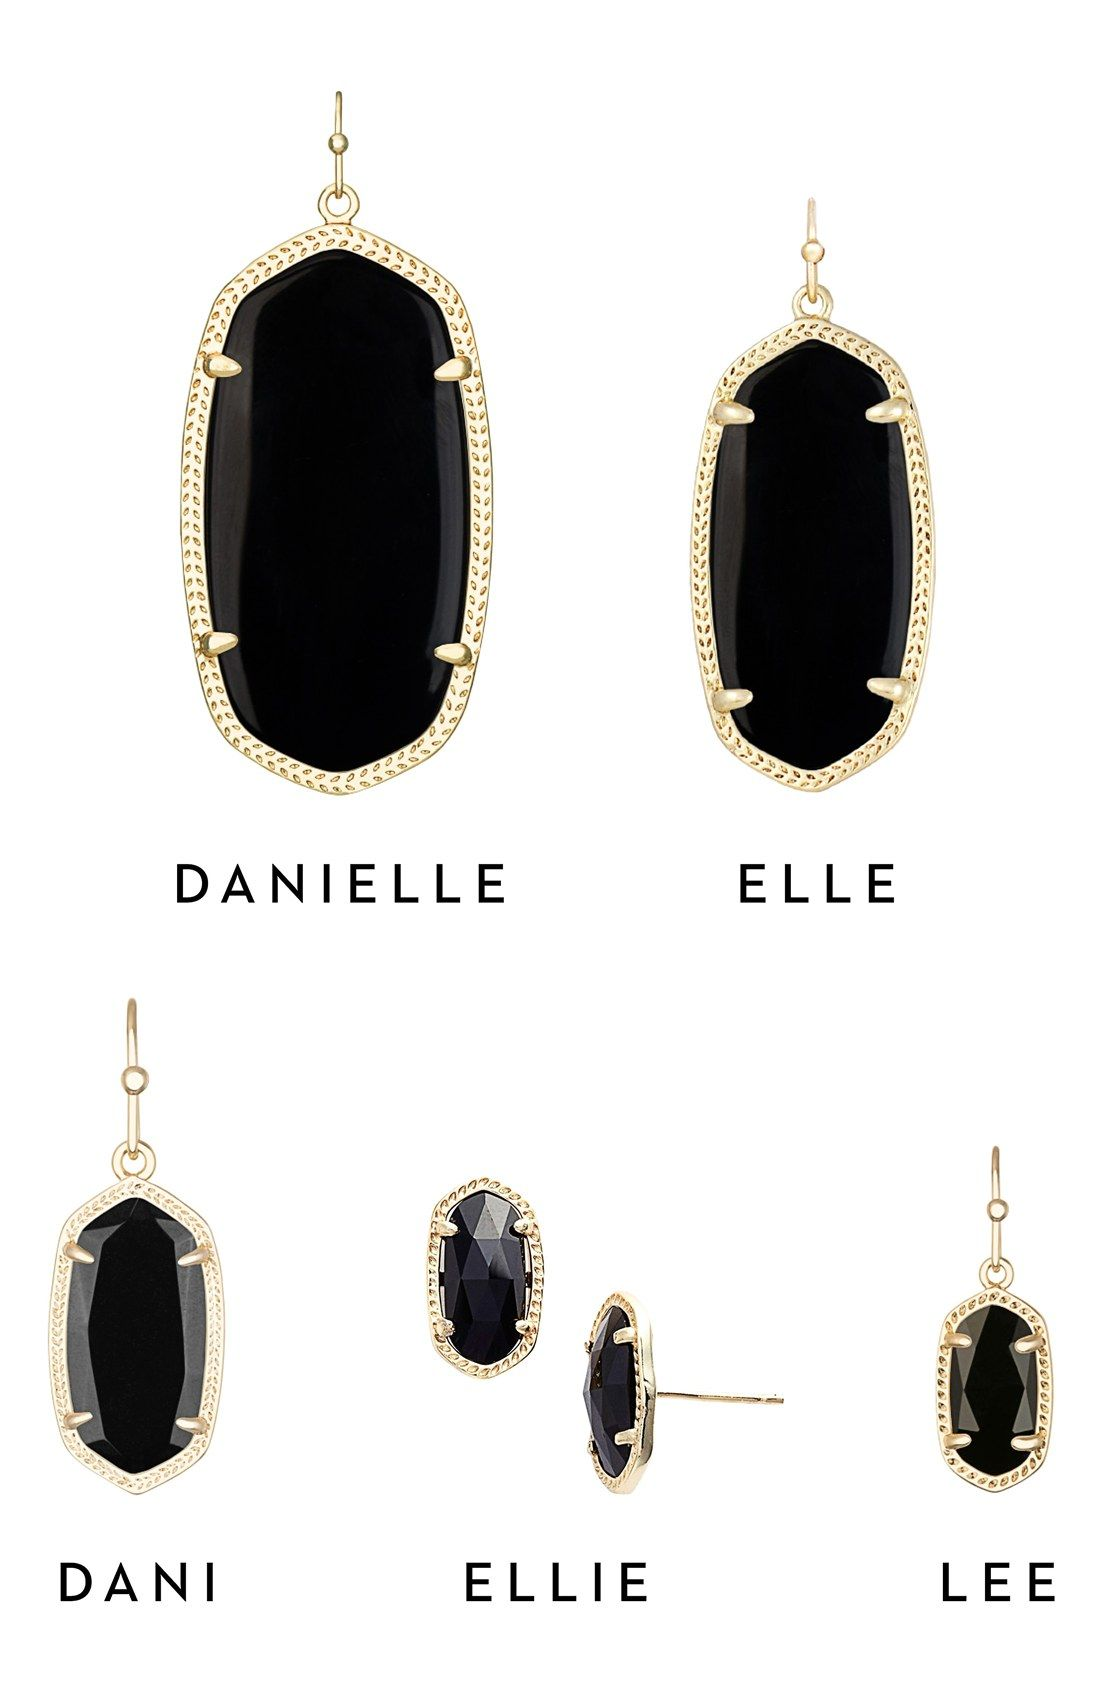 eb41e6d0c Kendra Scott earring sizes (Danielle, Ellie, Dani, Ellie, Lee ...